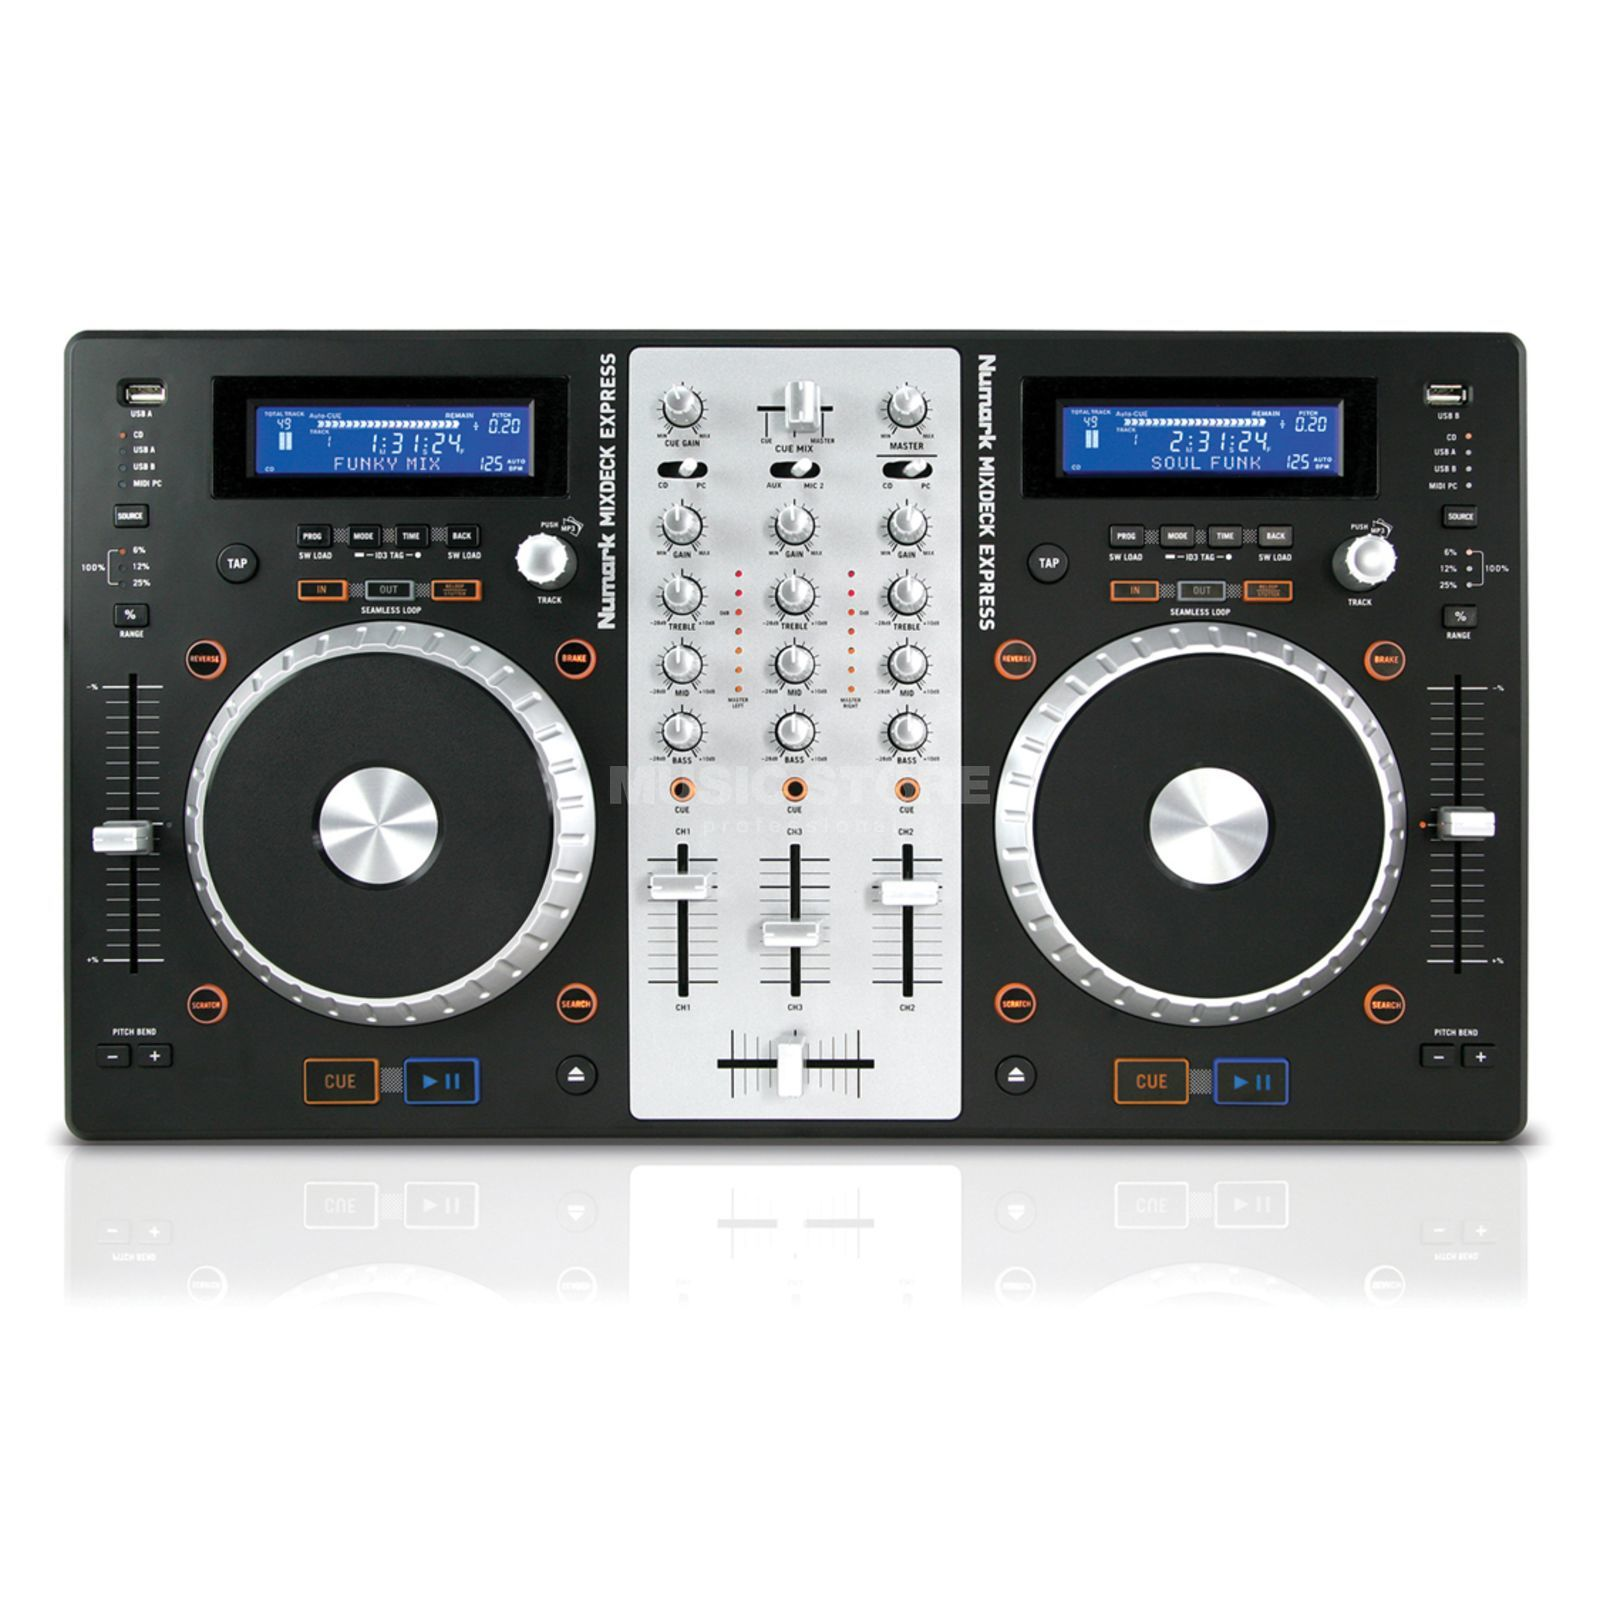 Numark Mixdeck Express DJ System mit CD/MP3/USB Decks Produktbild